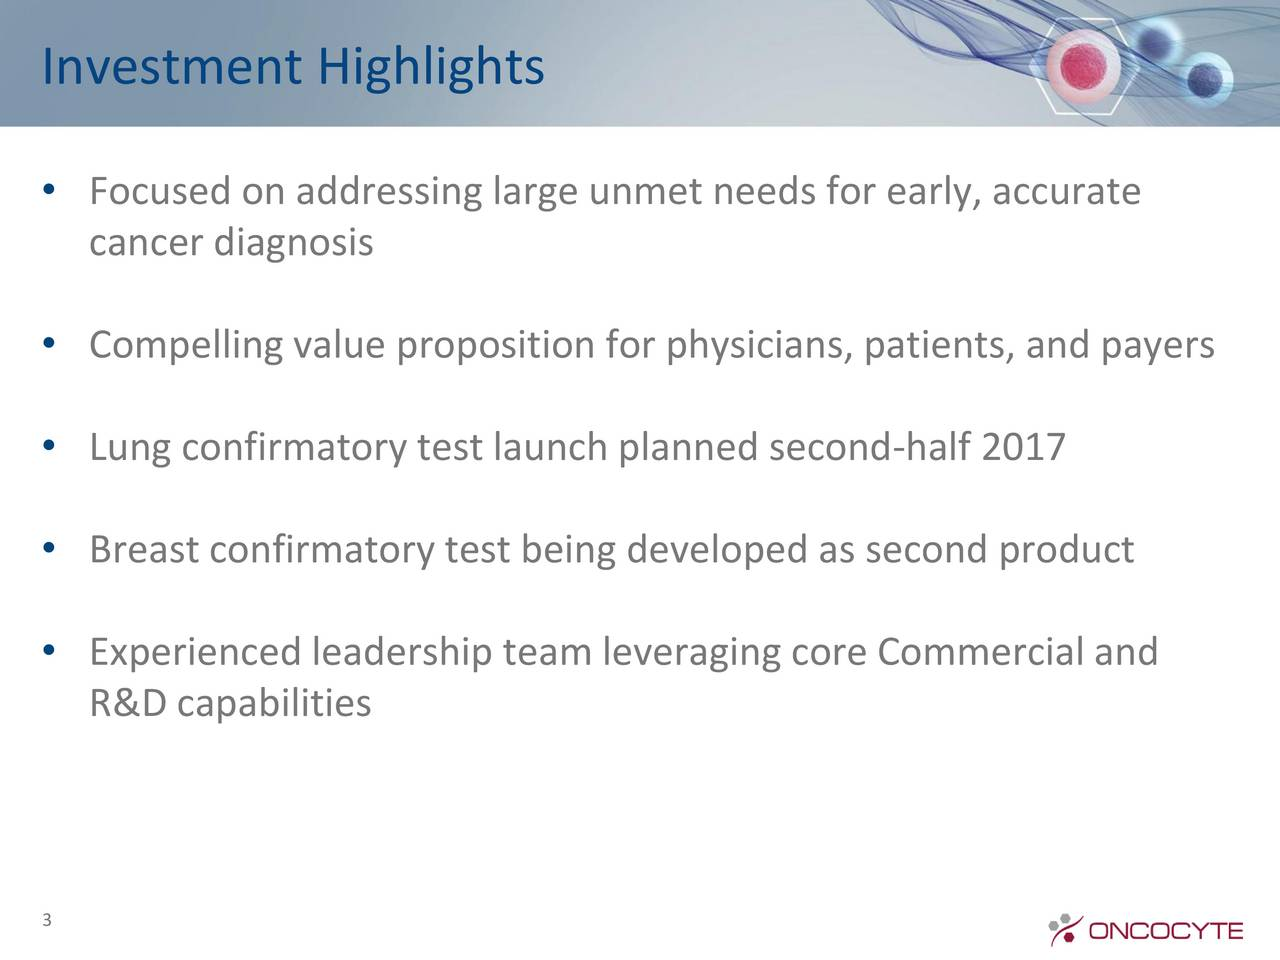 Focused on addressing large unmet needs for early, accurate cancer diagnosis Compelling value proposition for physicians, patients, and payers Lung confirmatory test launch planned second-half 2017 Breast confirmatory test being developed as second product Experienced leadership team leveraging core Commercial and R&D capabilities 3